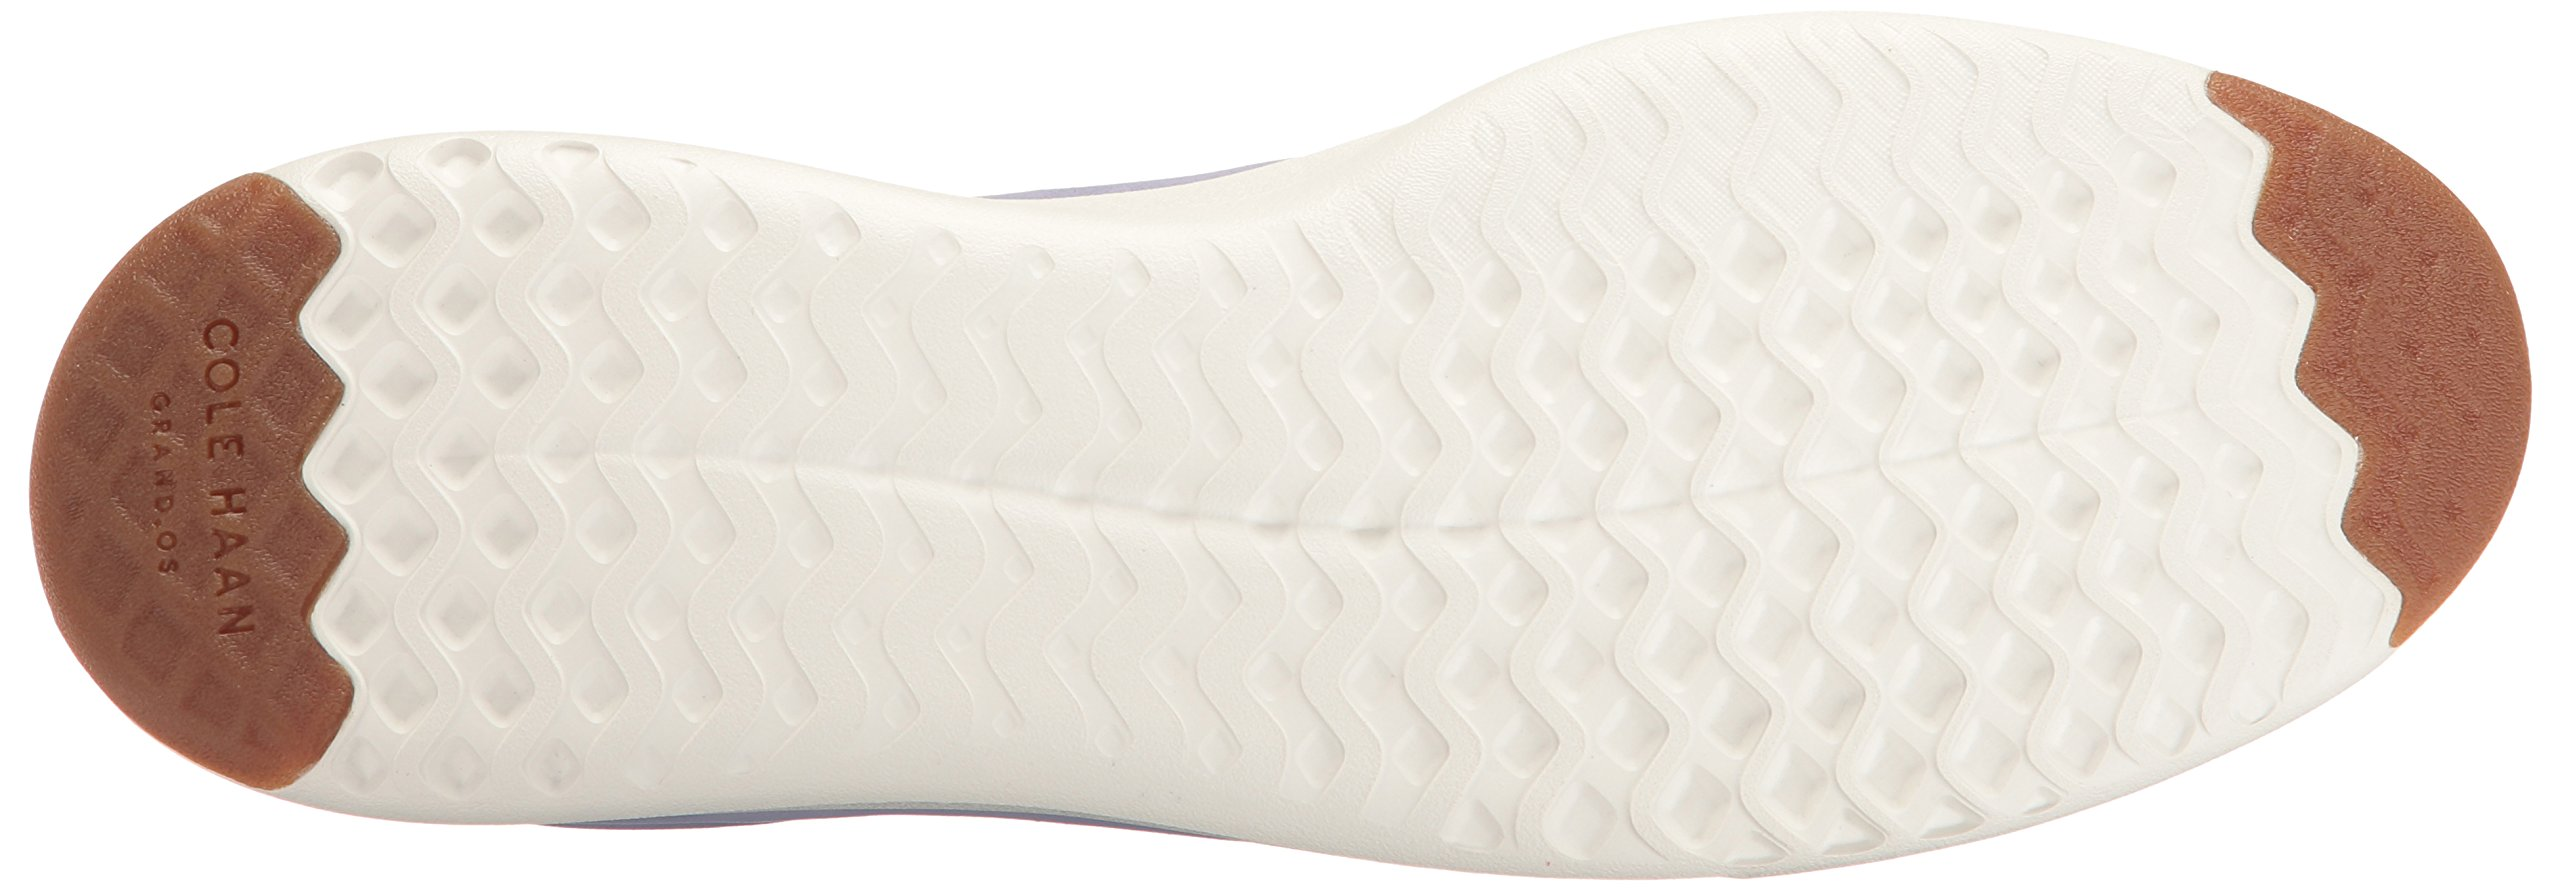 Cole Haan Womens Grandpro Tennis Economical, stylish, and eye-catching shoes